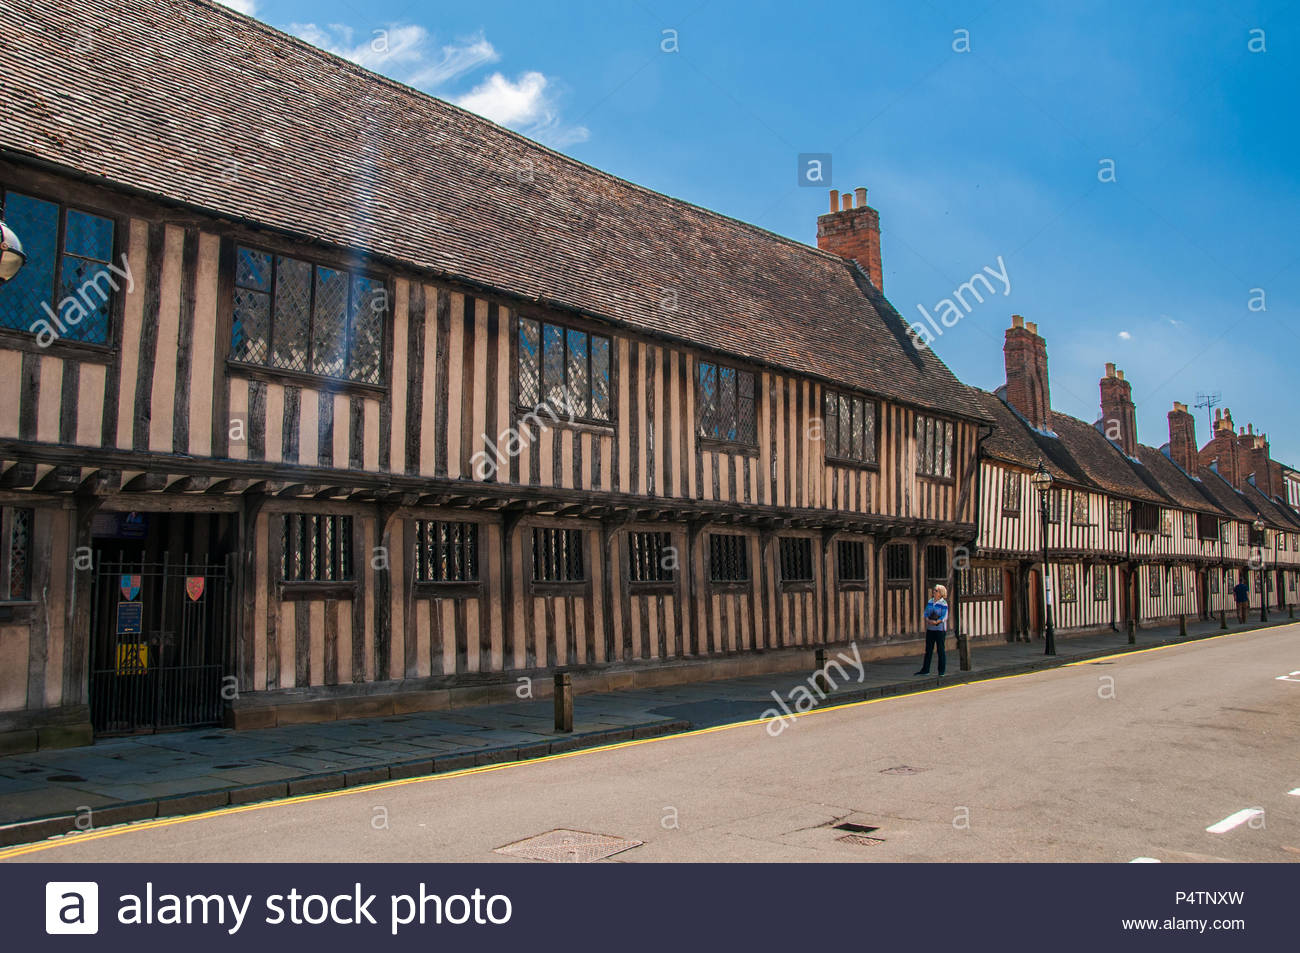 Old terraced houses with Tudor style architecture in central Stratford-upon-Avon. - Stock Image